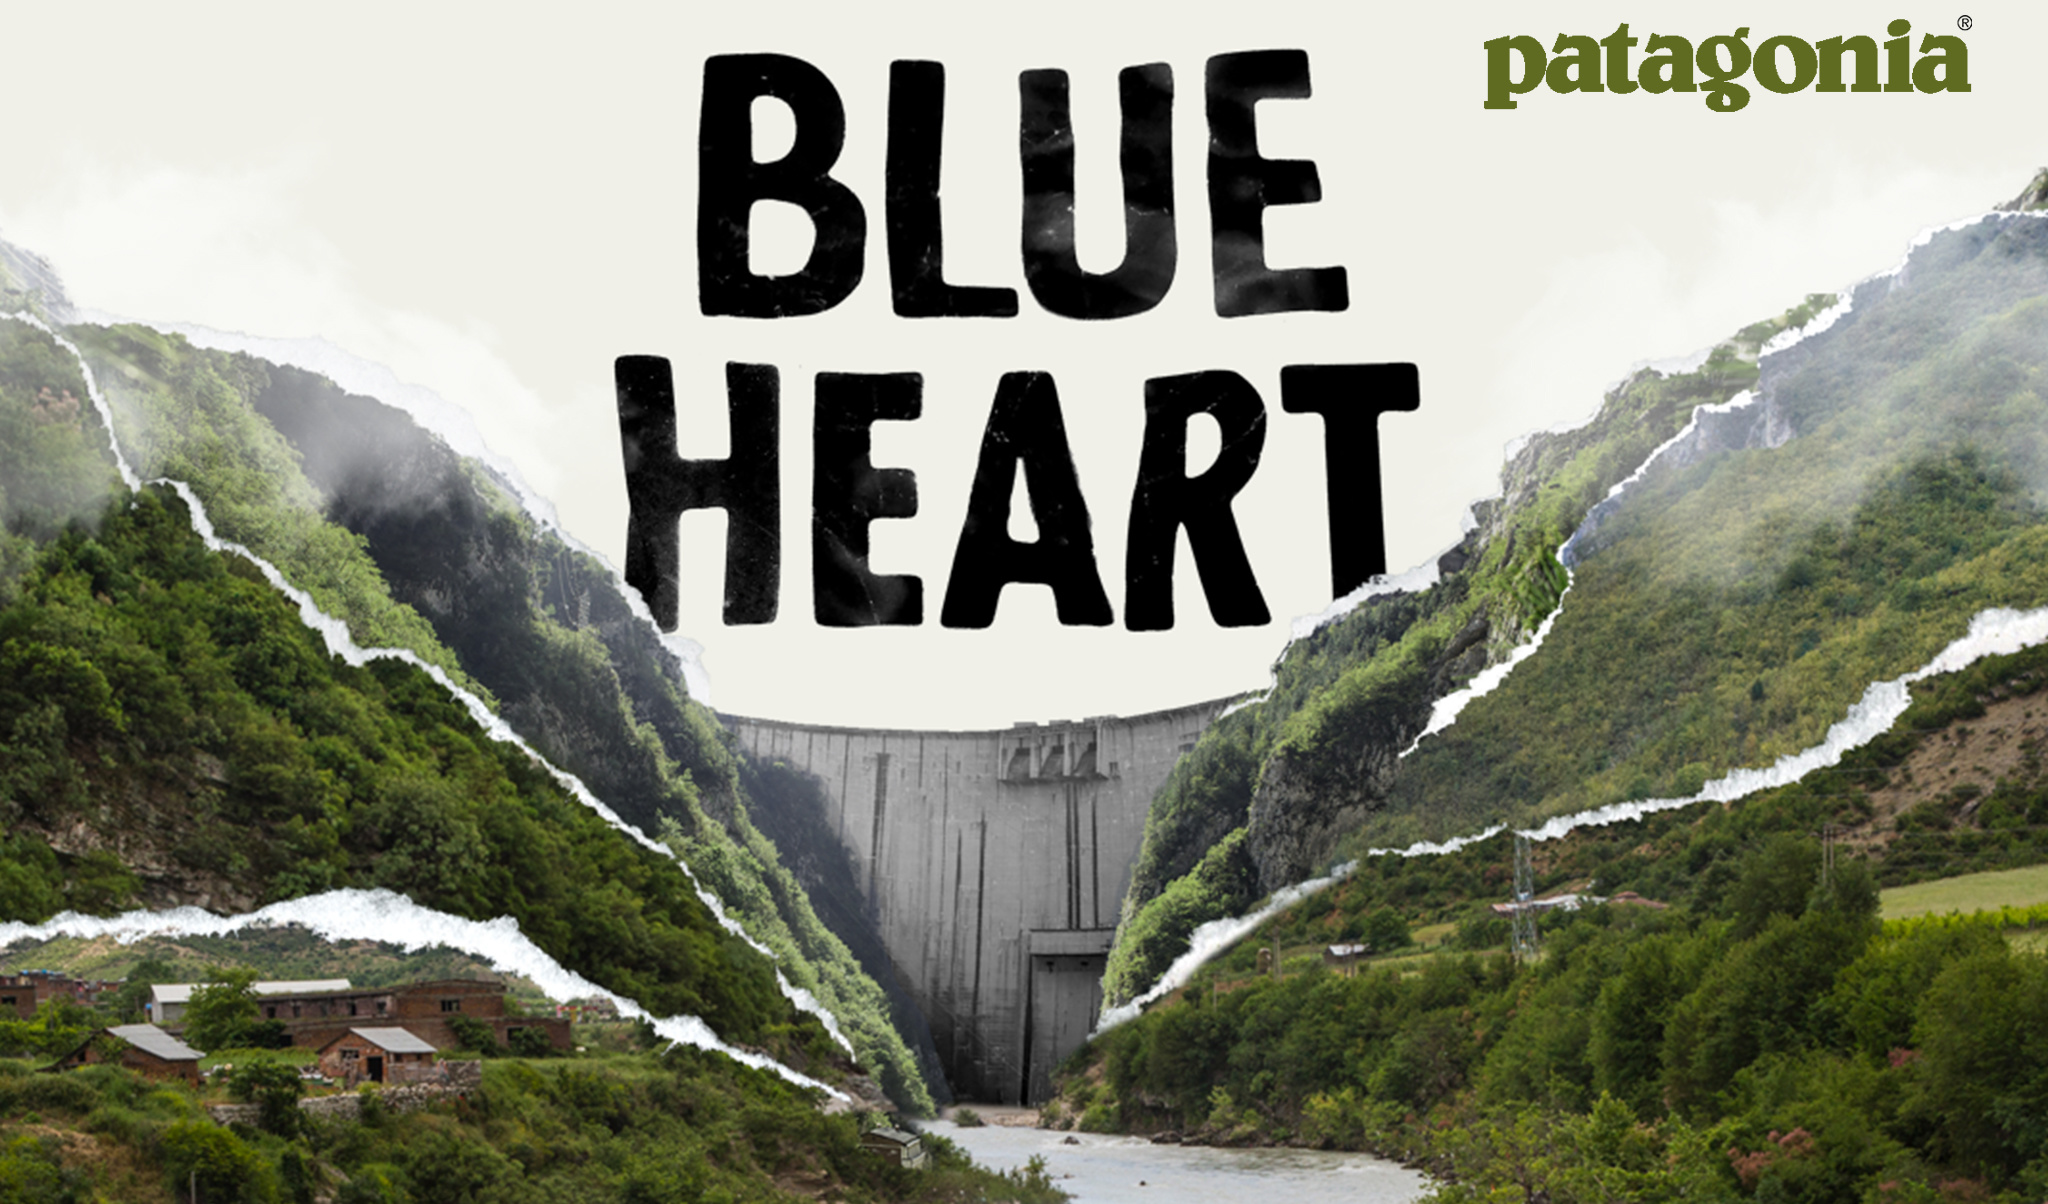 Patagonia - Blue Heart